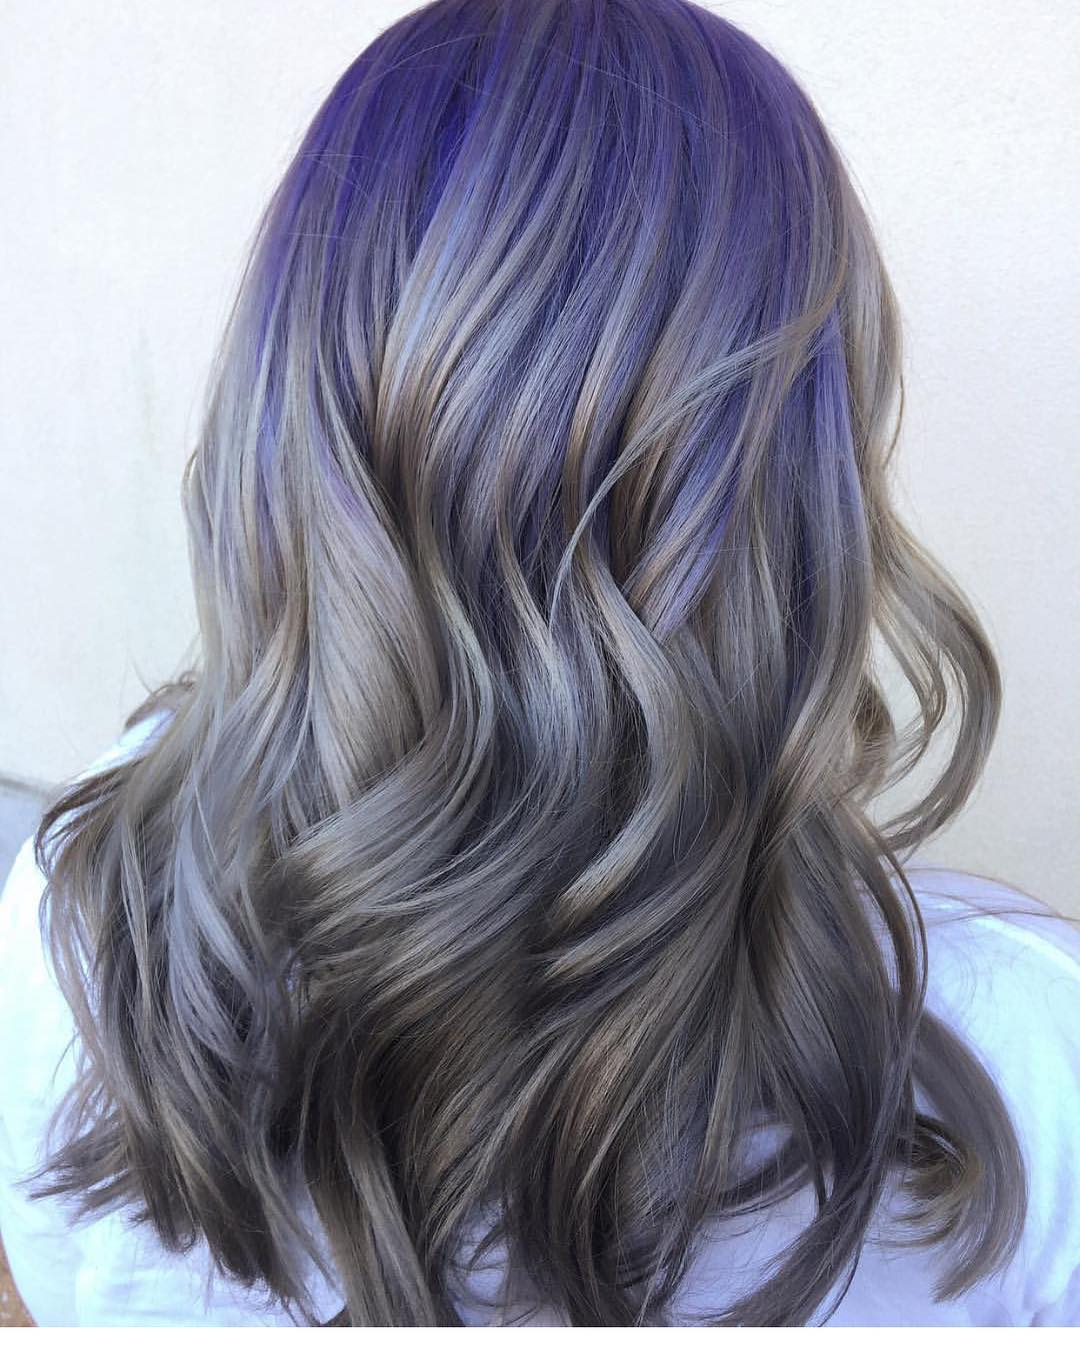 kellymccormickhair-unicorn-hair-purple-and-silver-highlights